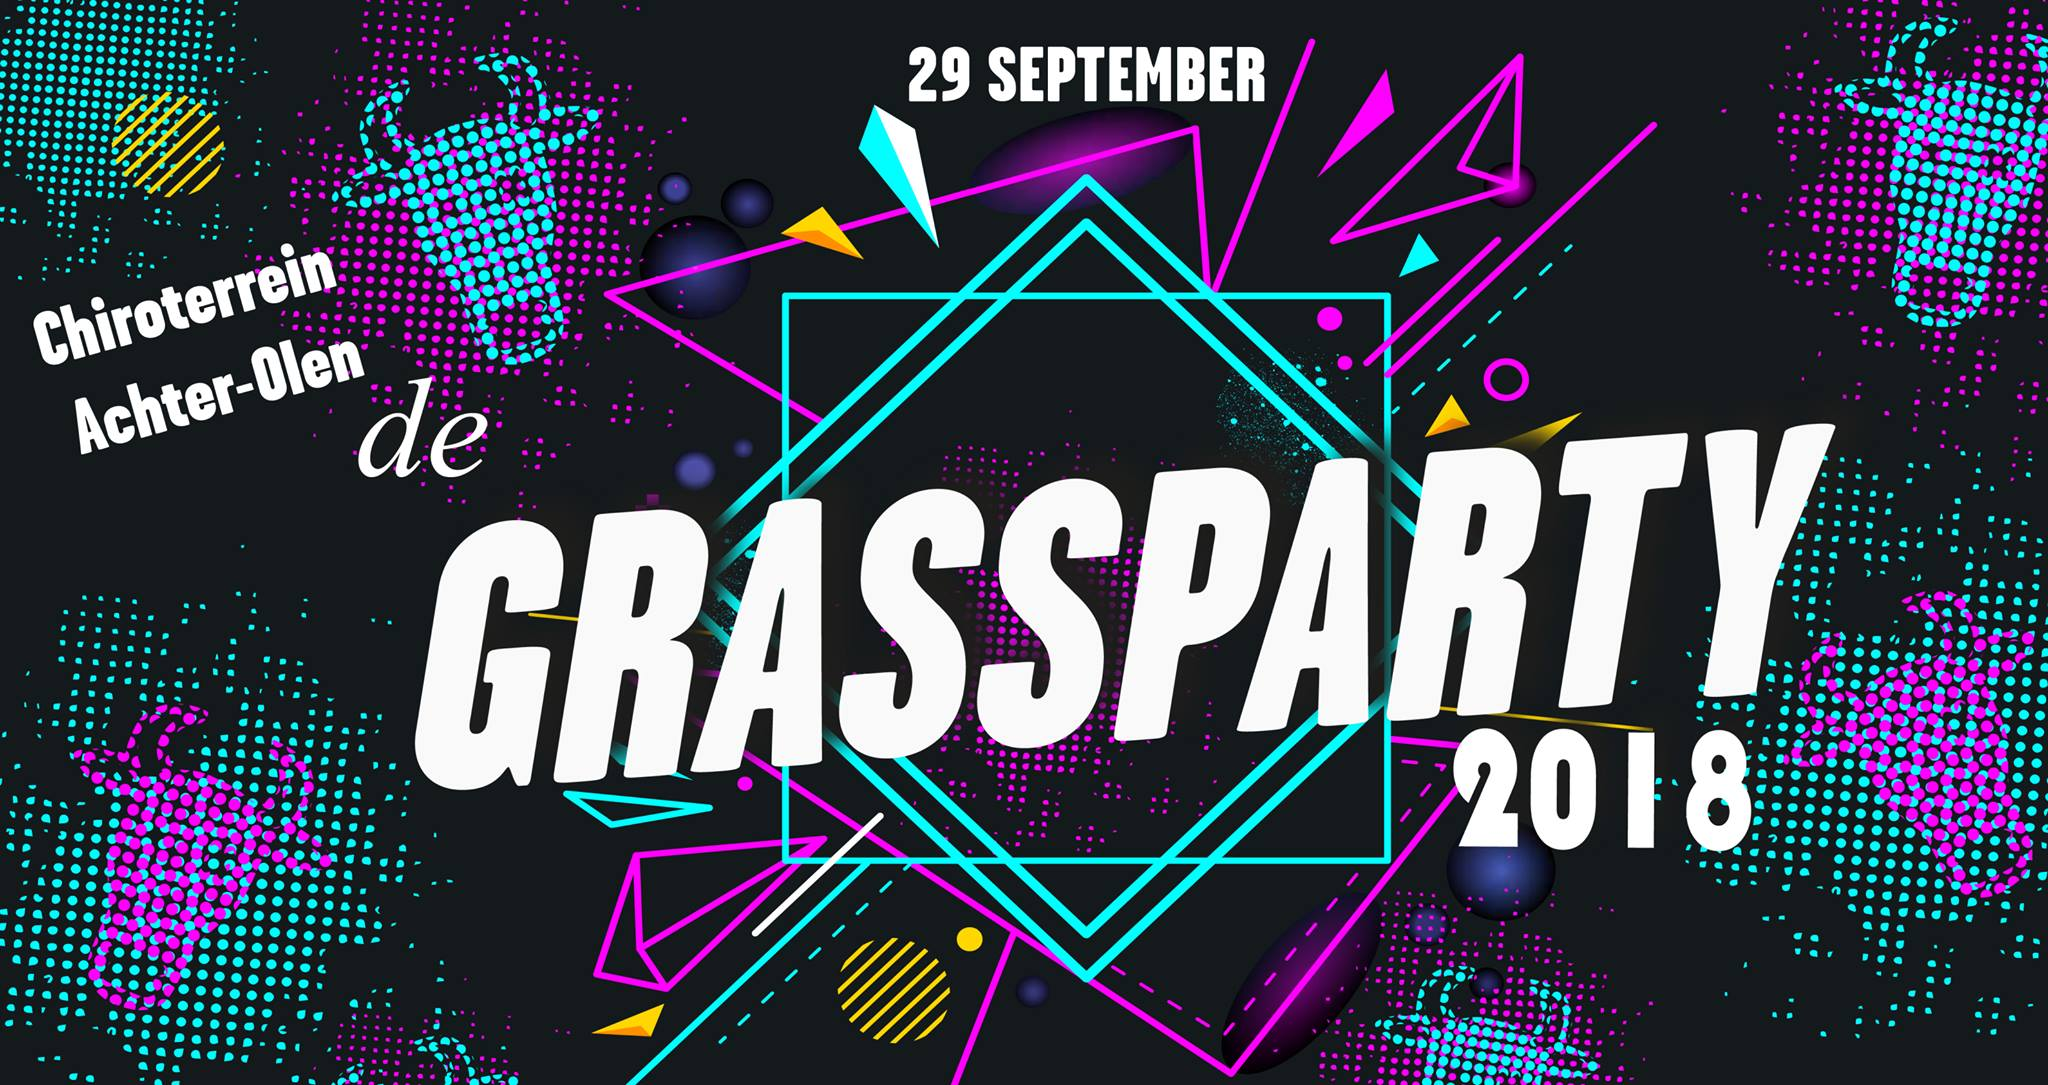 Grassparty 2018